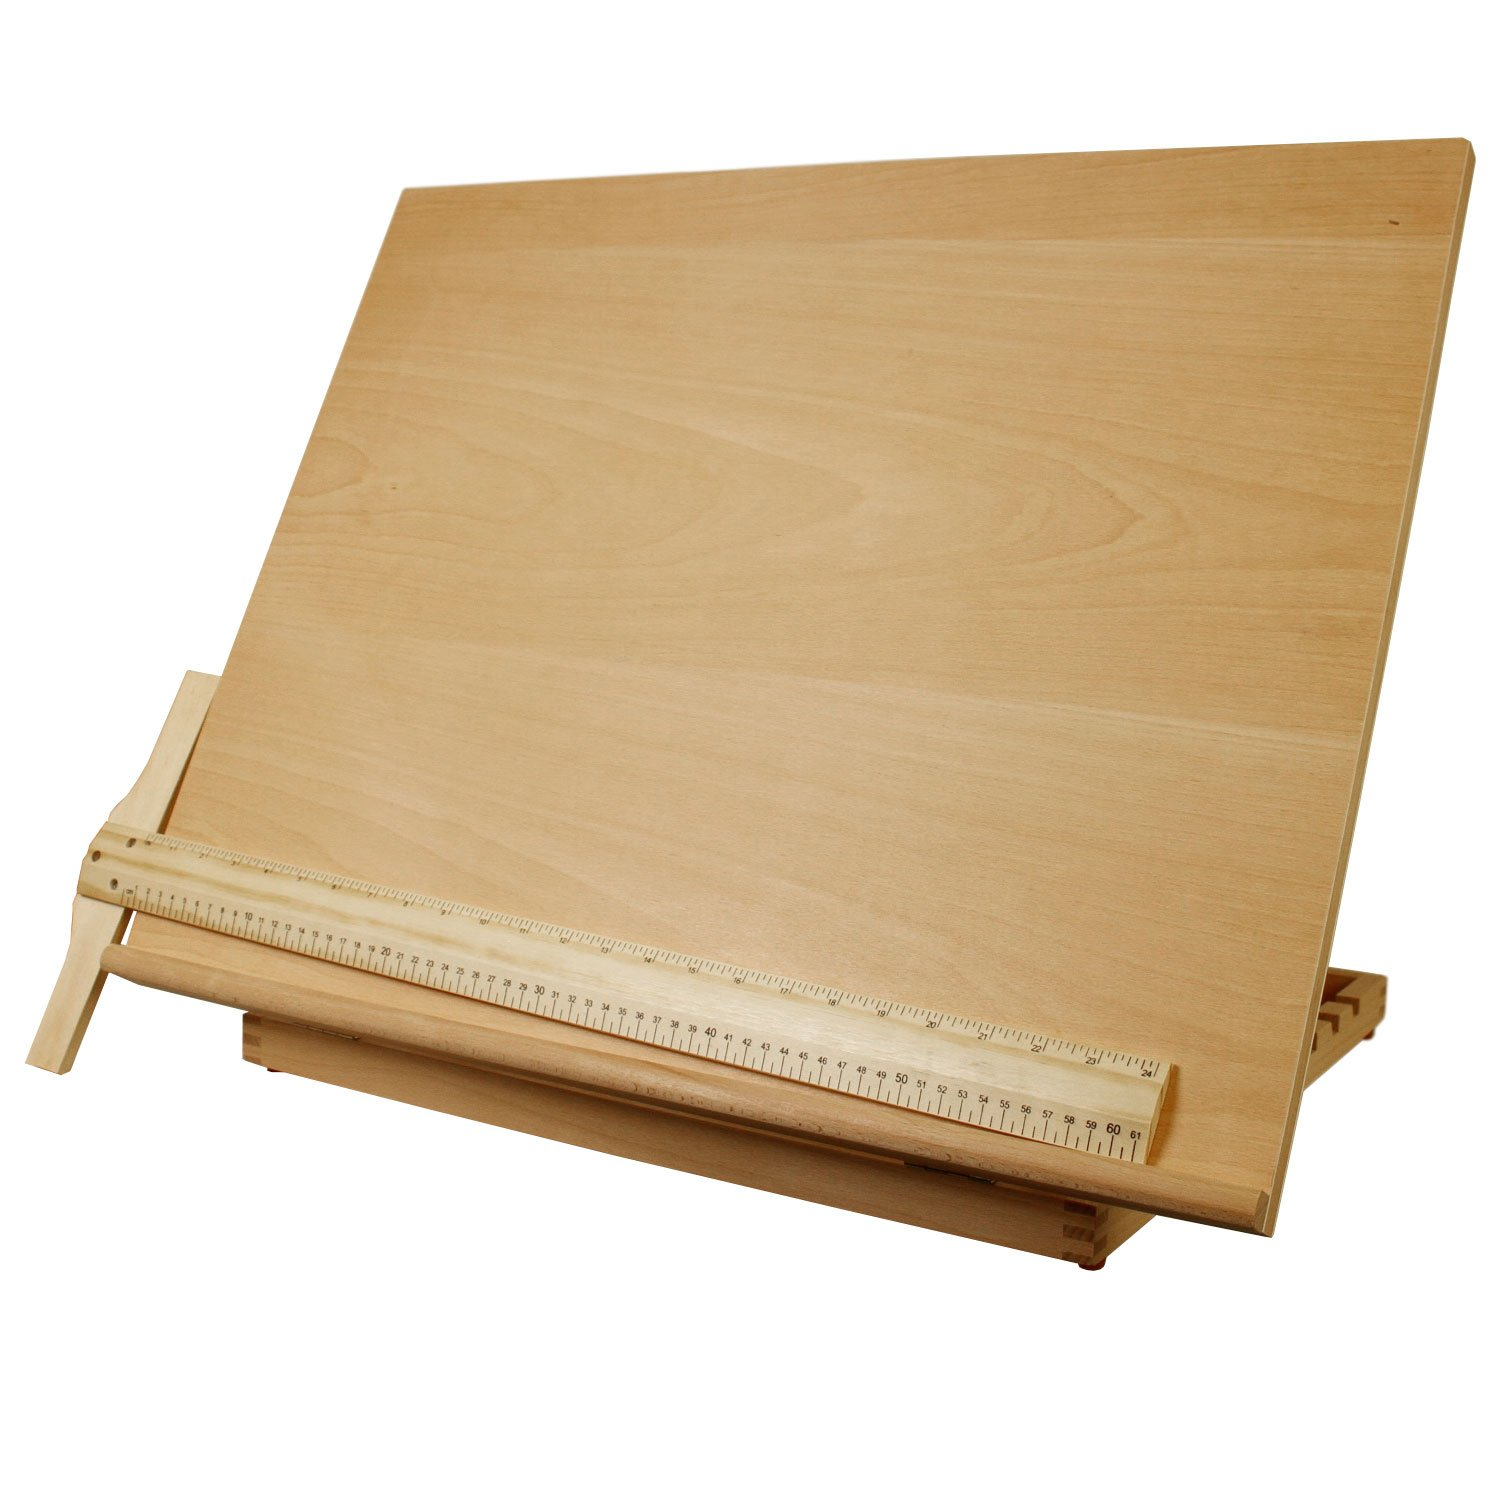 US Art Supply Extra Large Adjustable Wood Artist Drawing & Sketching Board 26'' Wide x 20-1/2'' Tall by US Art Supply